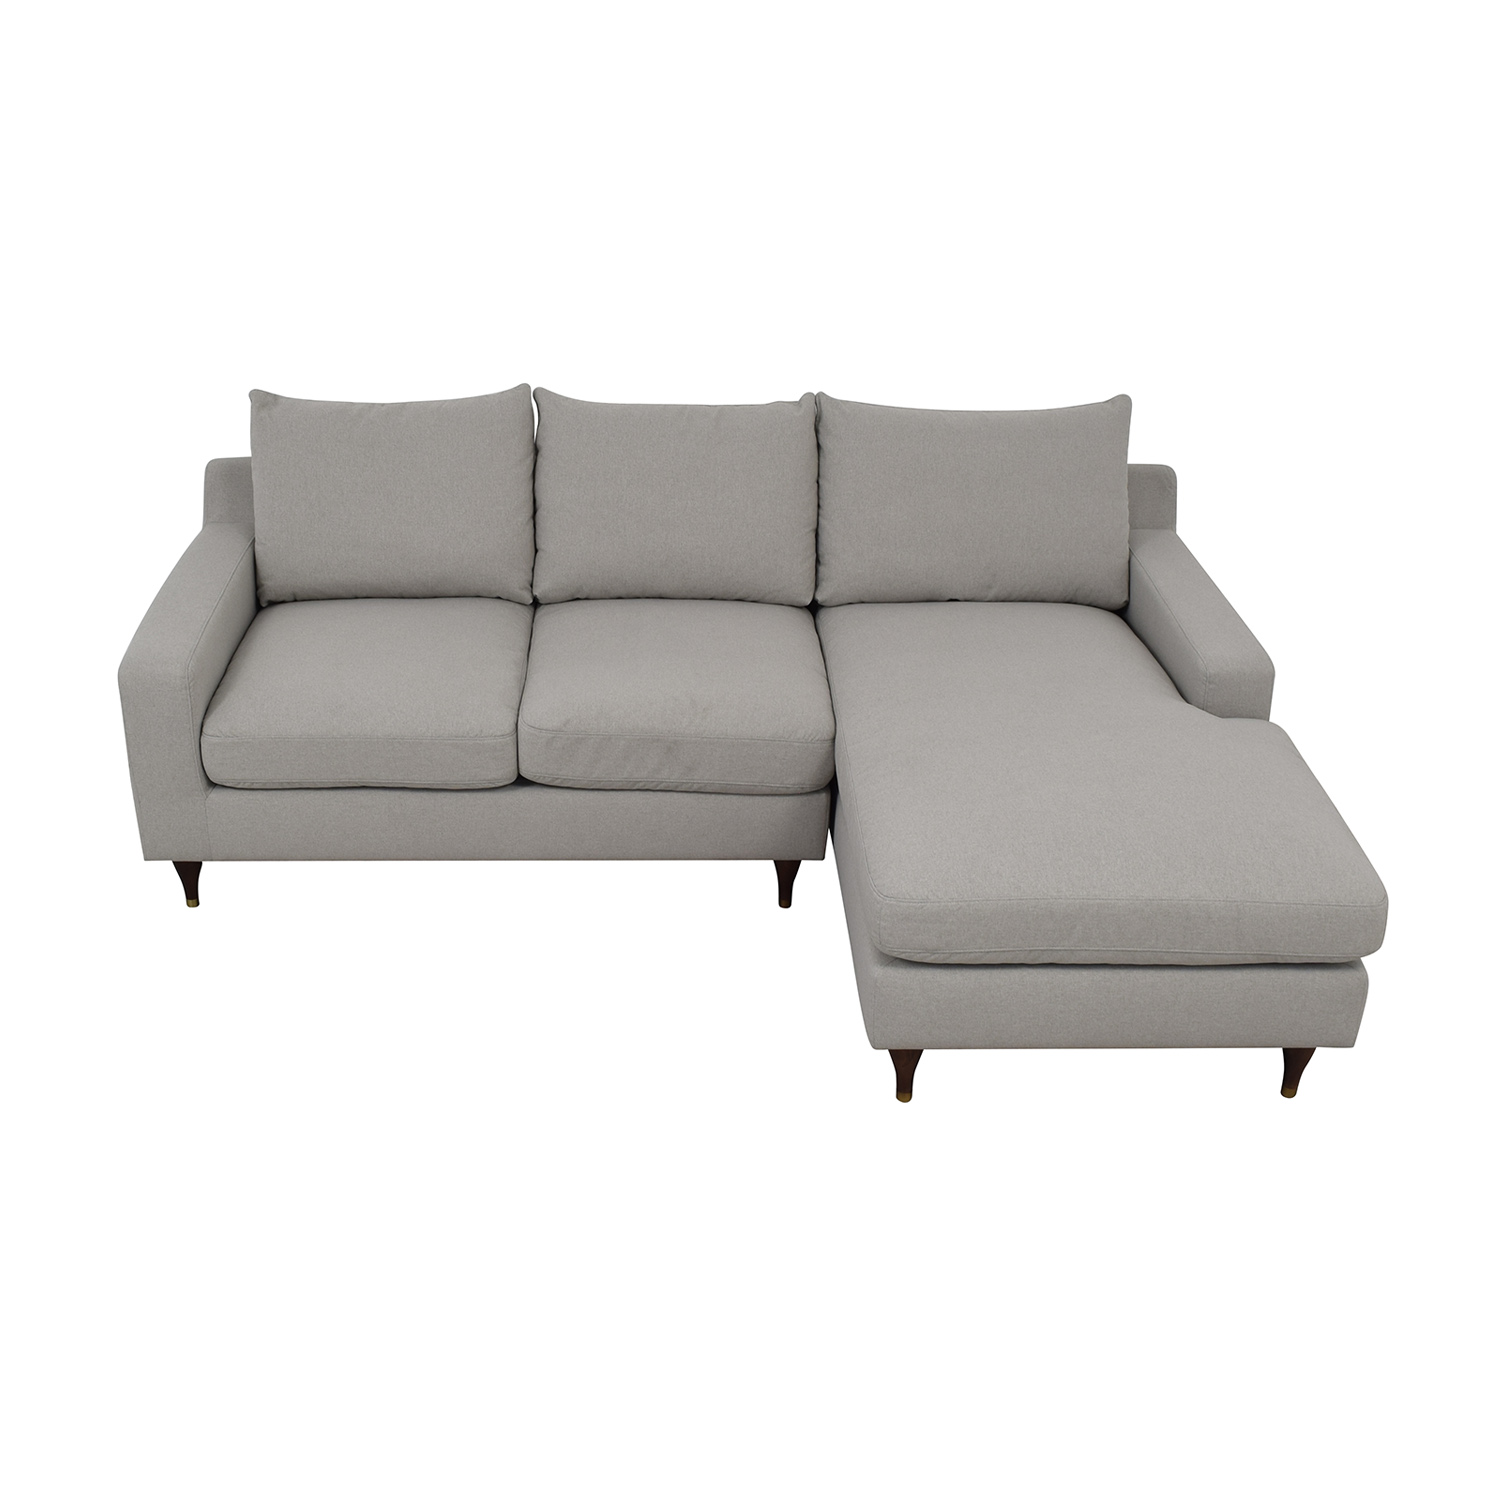 Sloan Beige Plush Right Chaise Sectional second hand